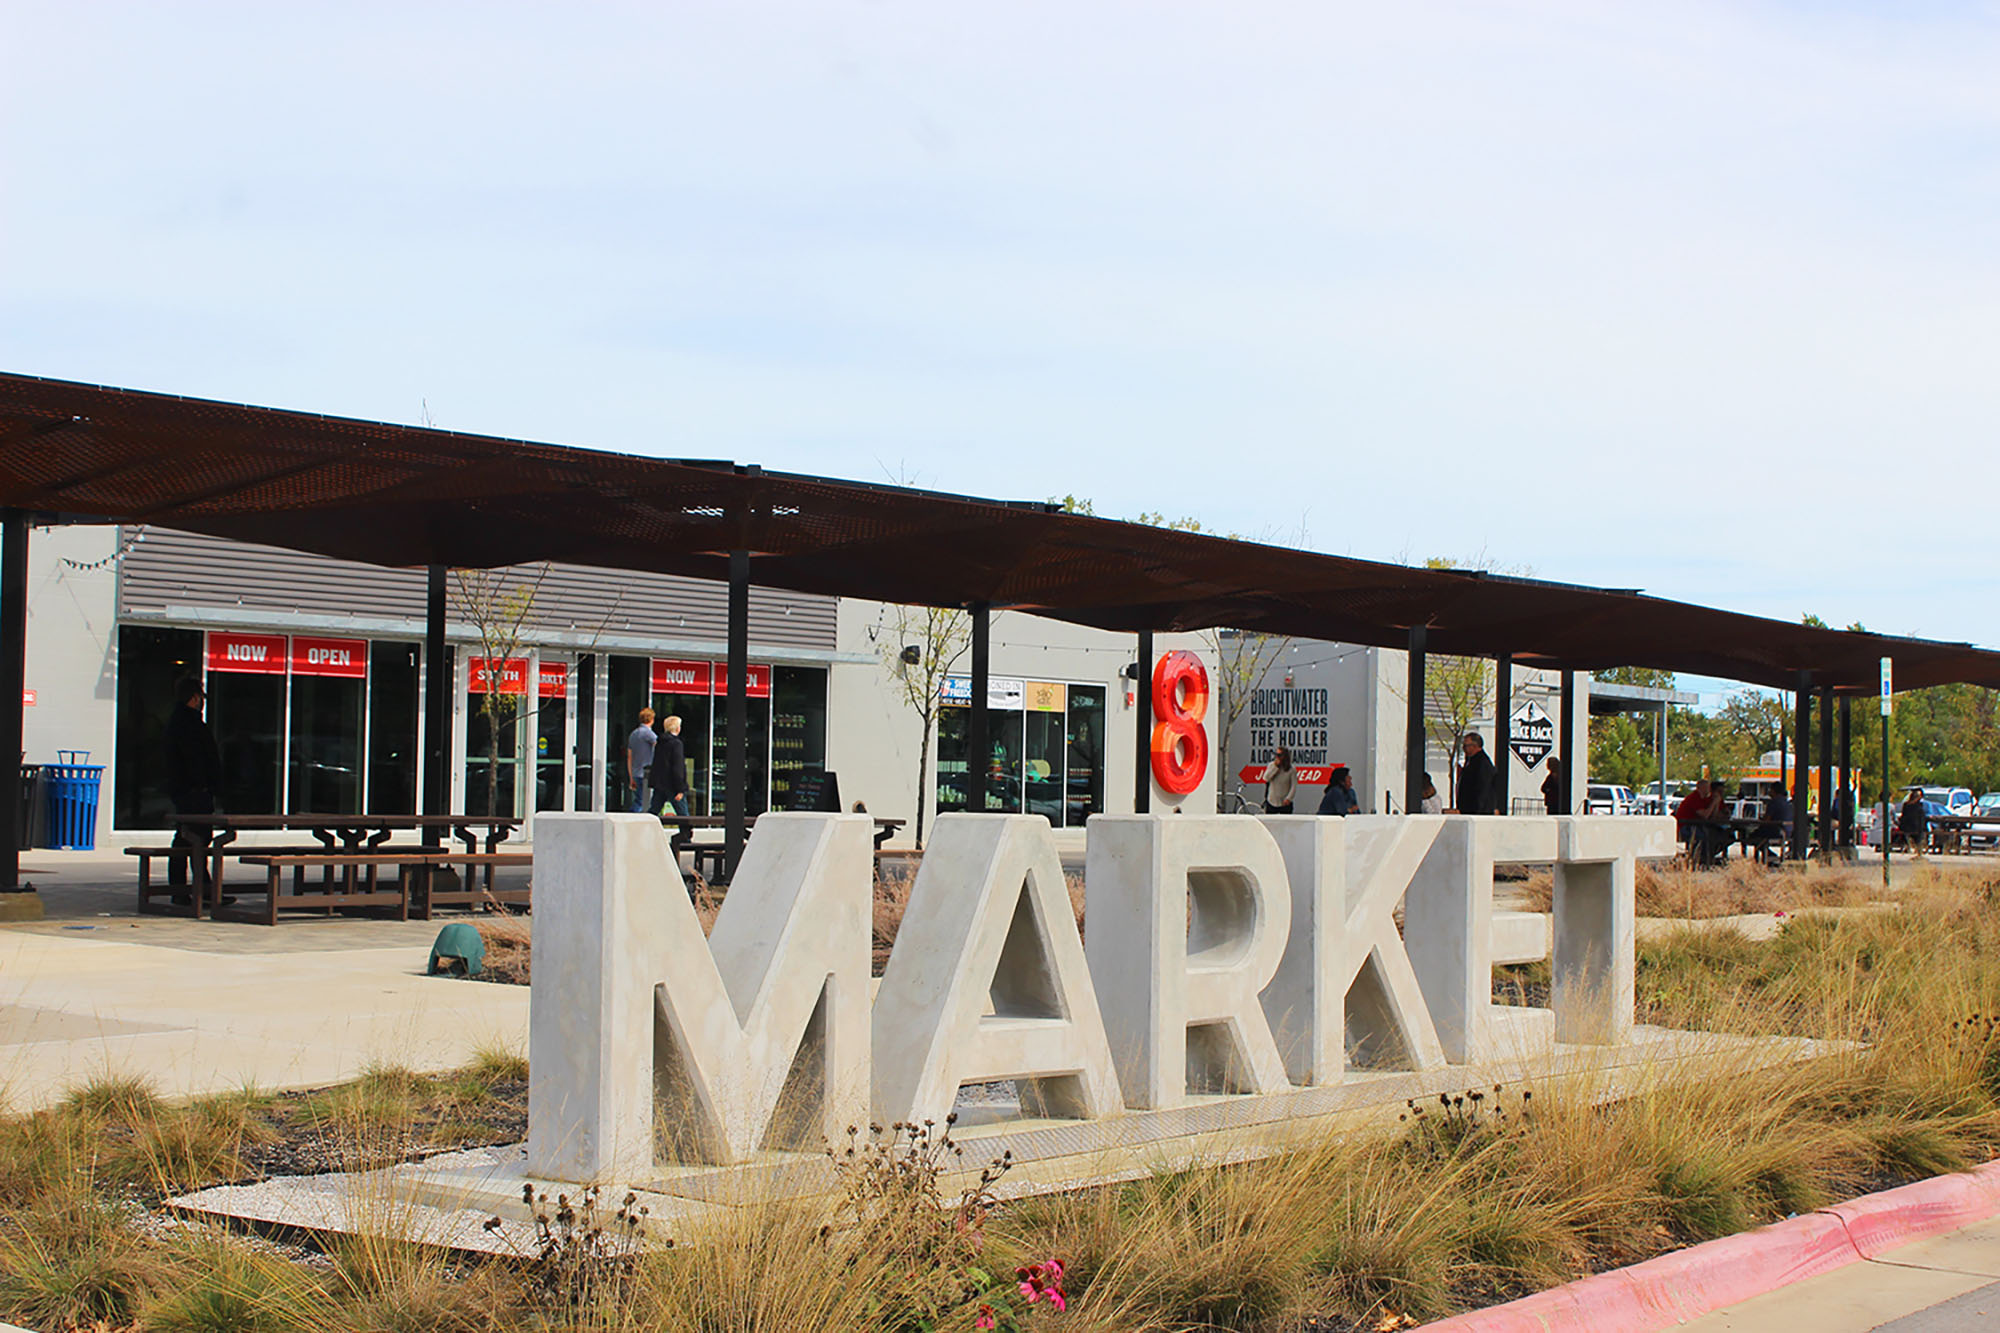 8th Street Market is one of the reasons to visit Bentonville